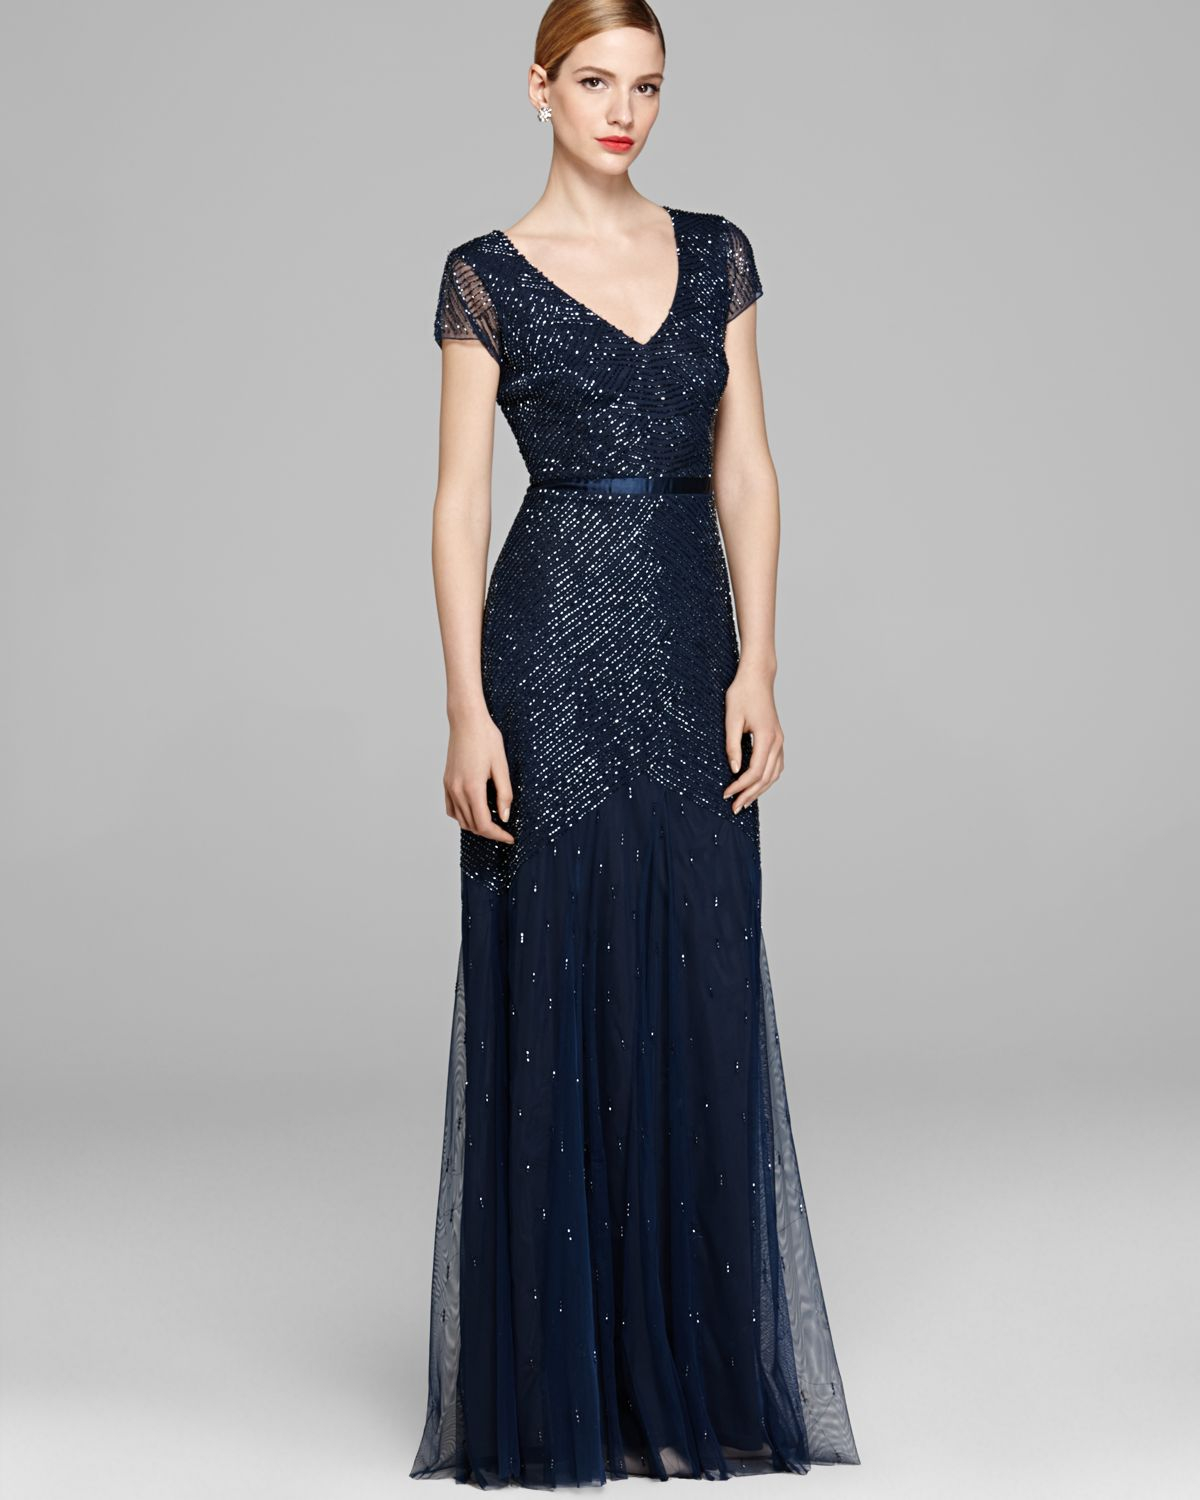 Adrianna papell Gown Cap Sleeve Beaded in Blue  Lyst